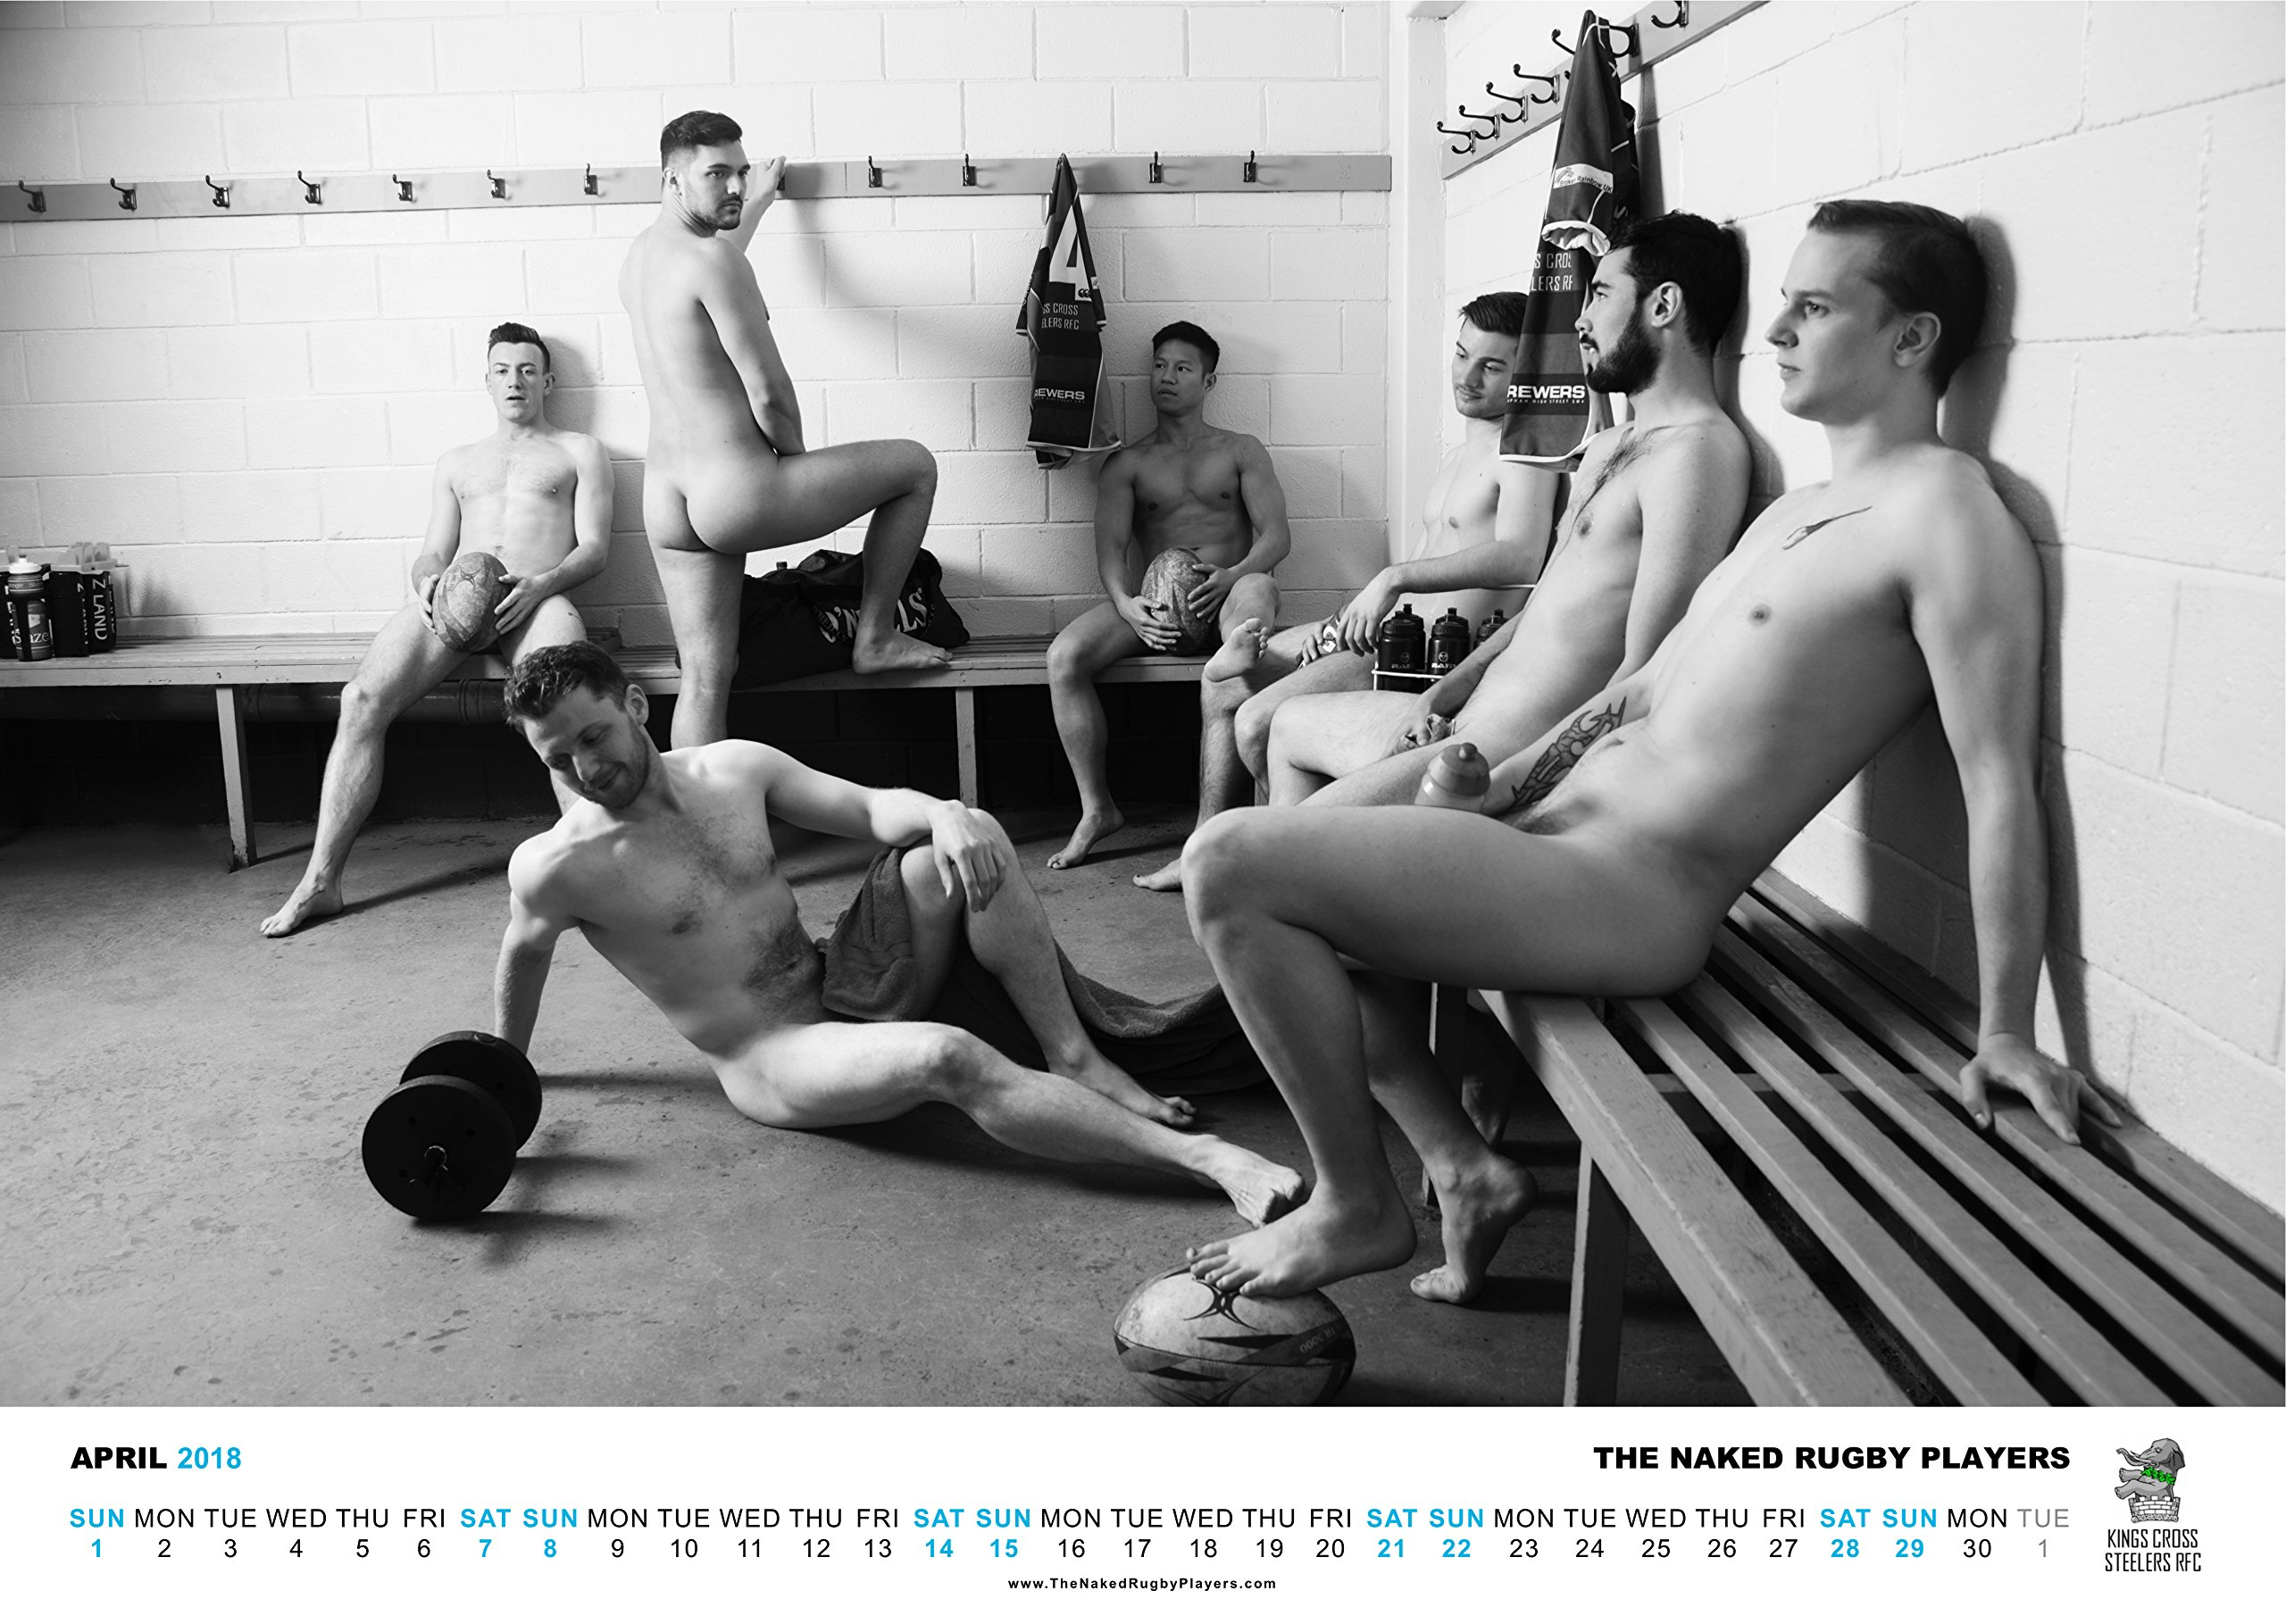 The Naked Rugby Players Calendar 2018: Amazon.co.uk: Diverse Retailing Ltd,  The Naked Rugby Players: 0742880612699: Books